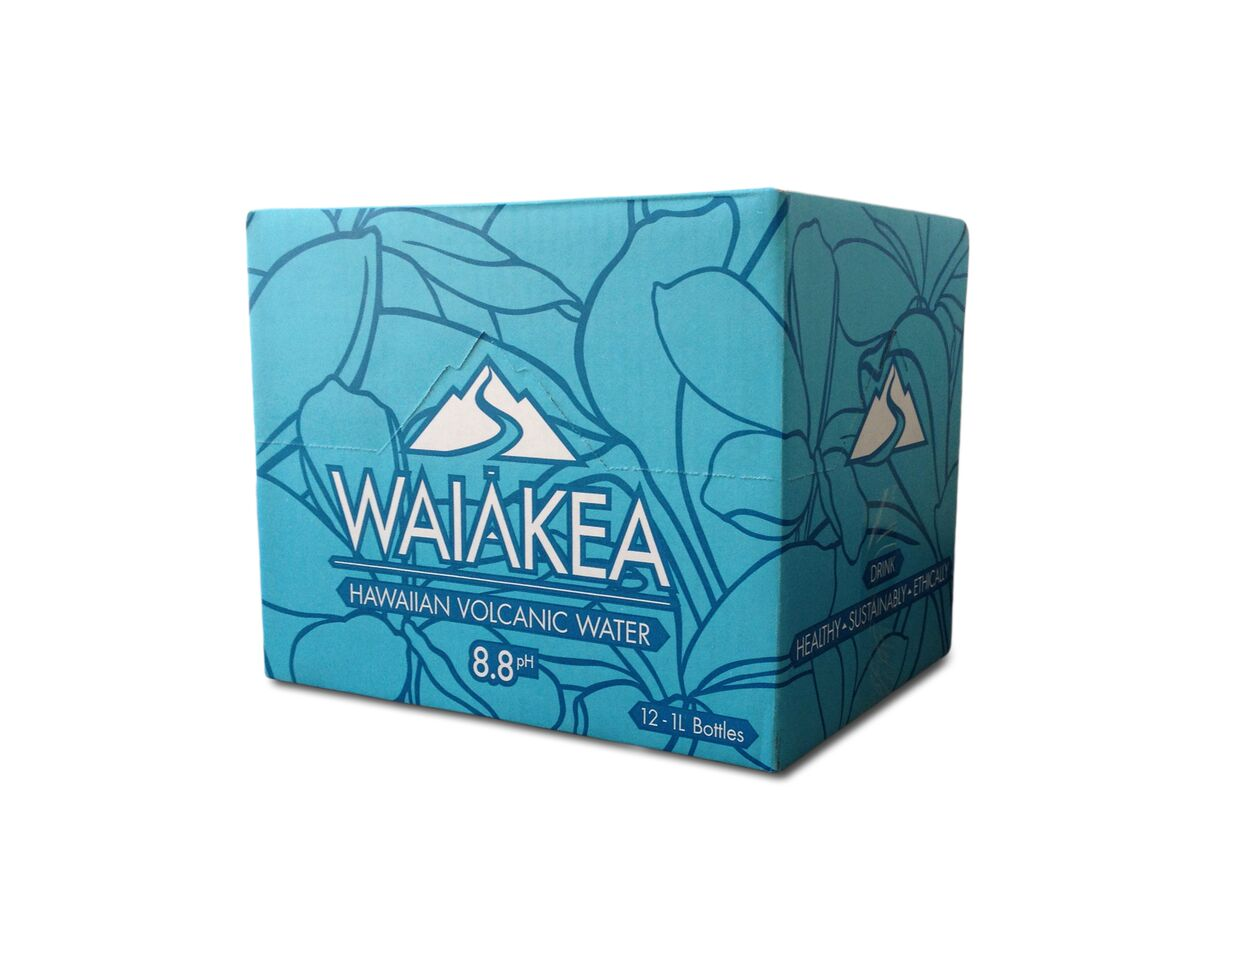 Artificially and Naturally Alkaline water: interview with Ryan of Waiakea Hawaiian Volcanic Water